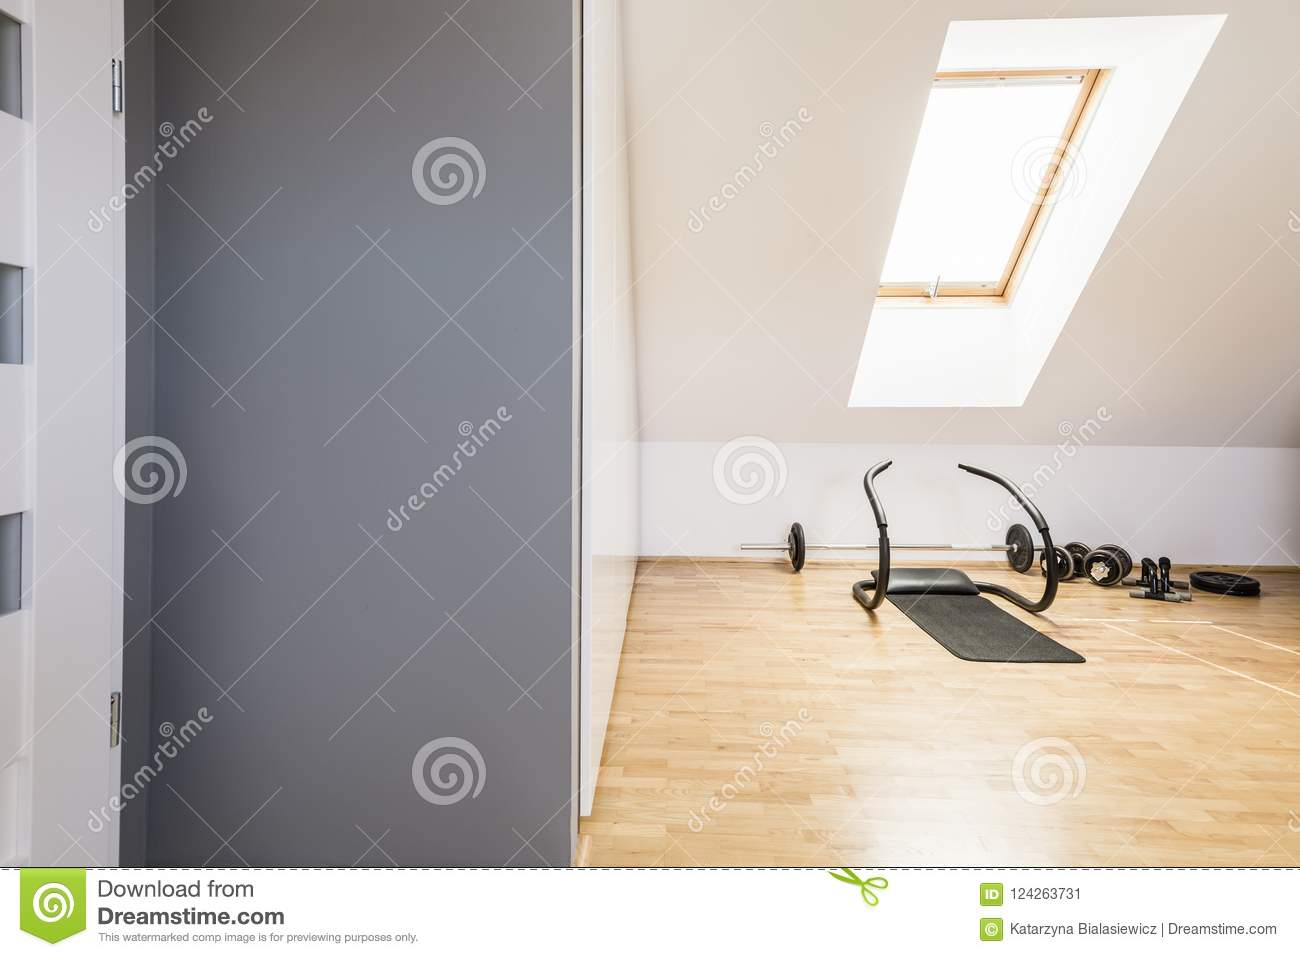 Athletic equipment on wooden floor in home gym interior in the a